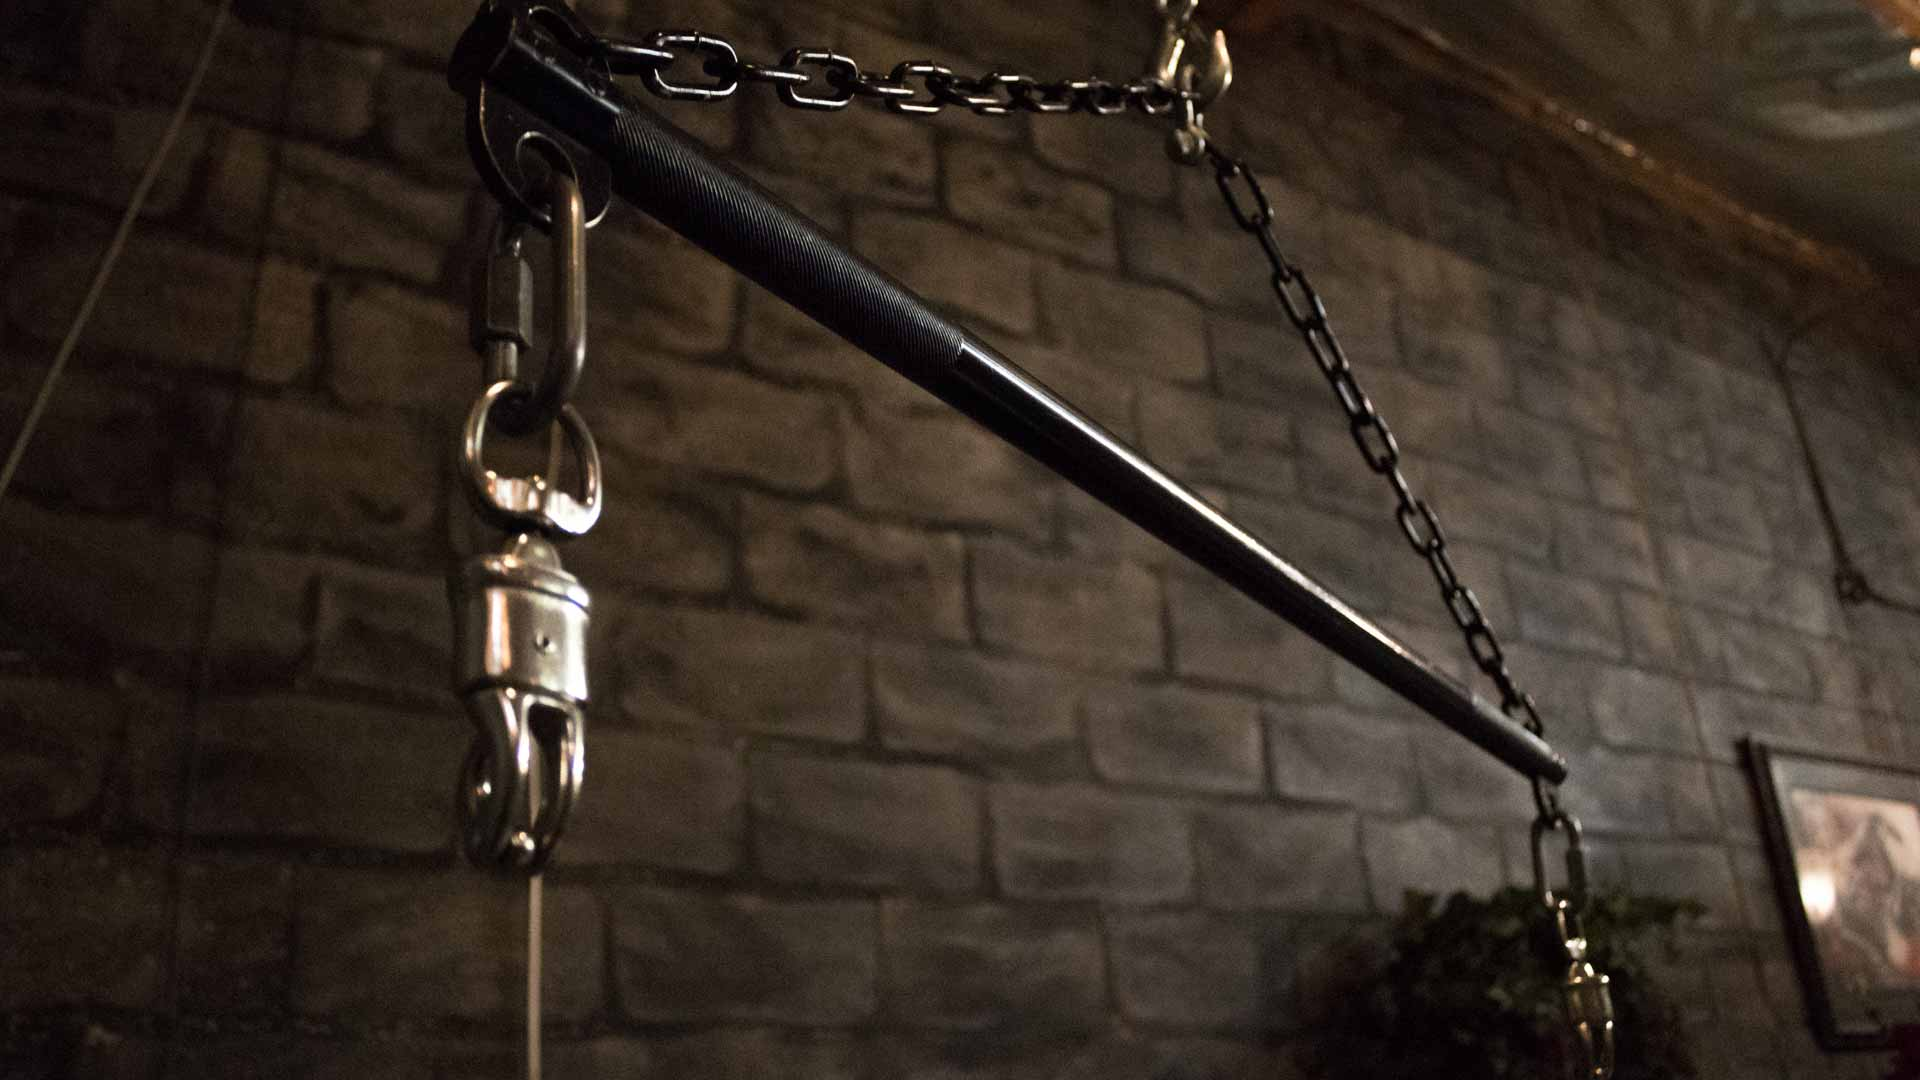 Dungeon Suspension Hoist